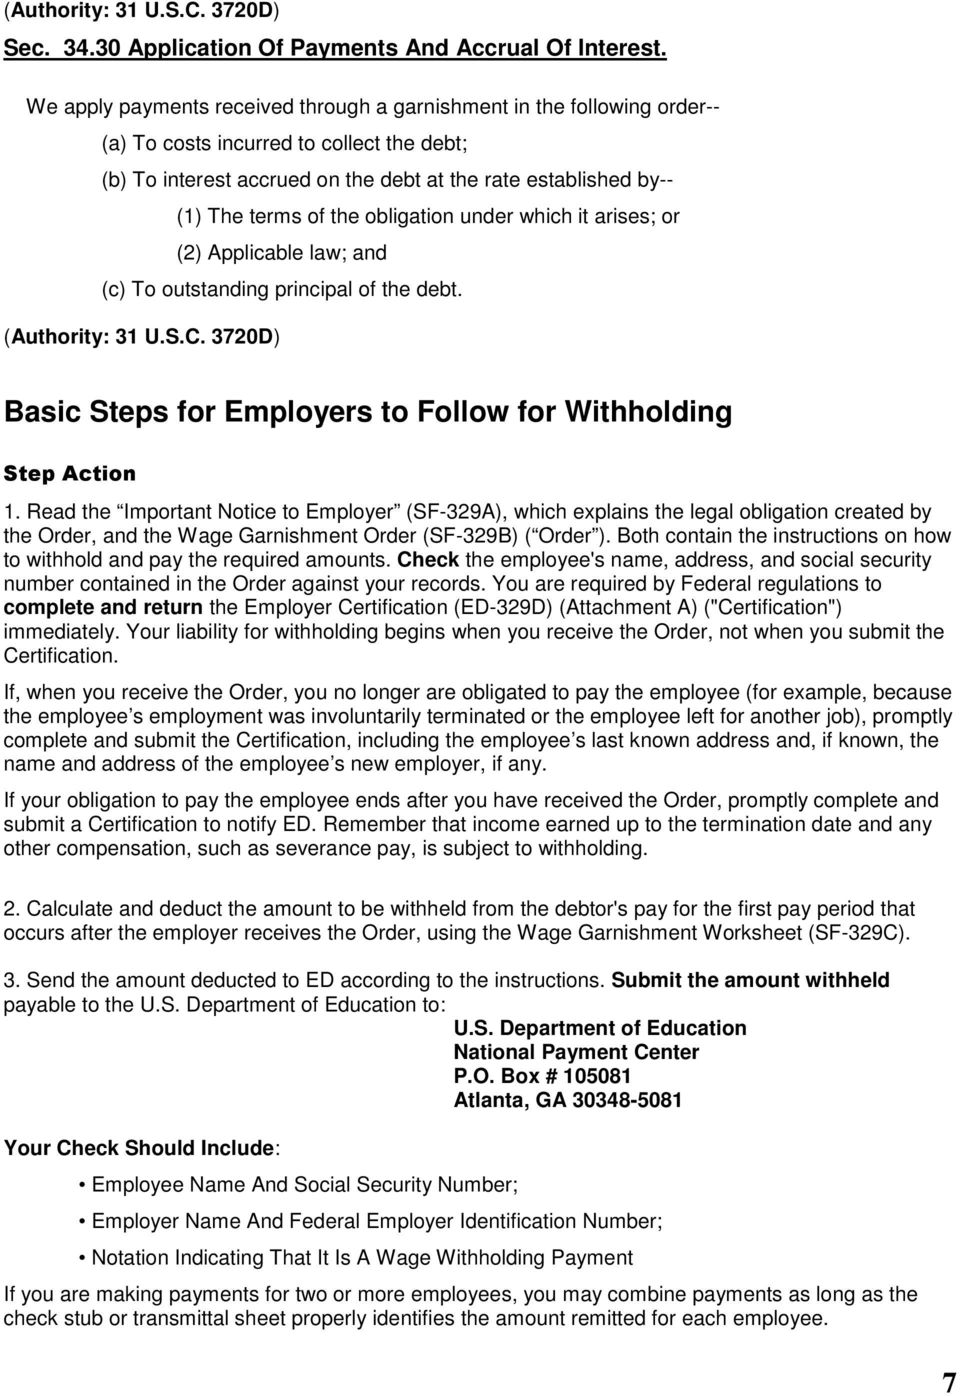 the obligation under which it arises; or (2) Applicable law; and (c) To outstanding principal of the debt. Basic Steps for Employers to Follow for Withholding Step Action 1.